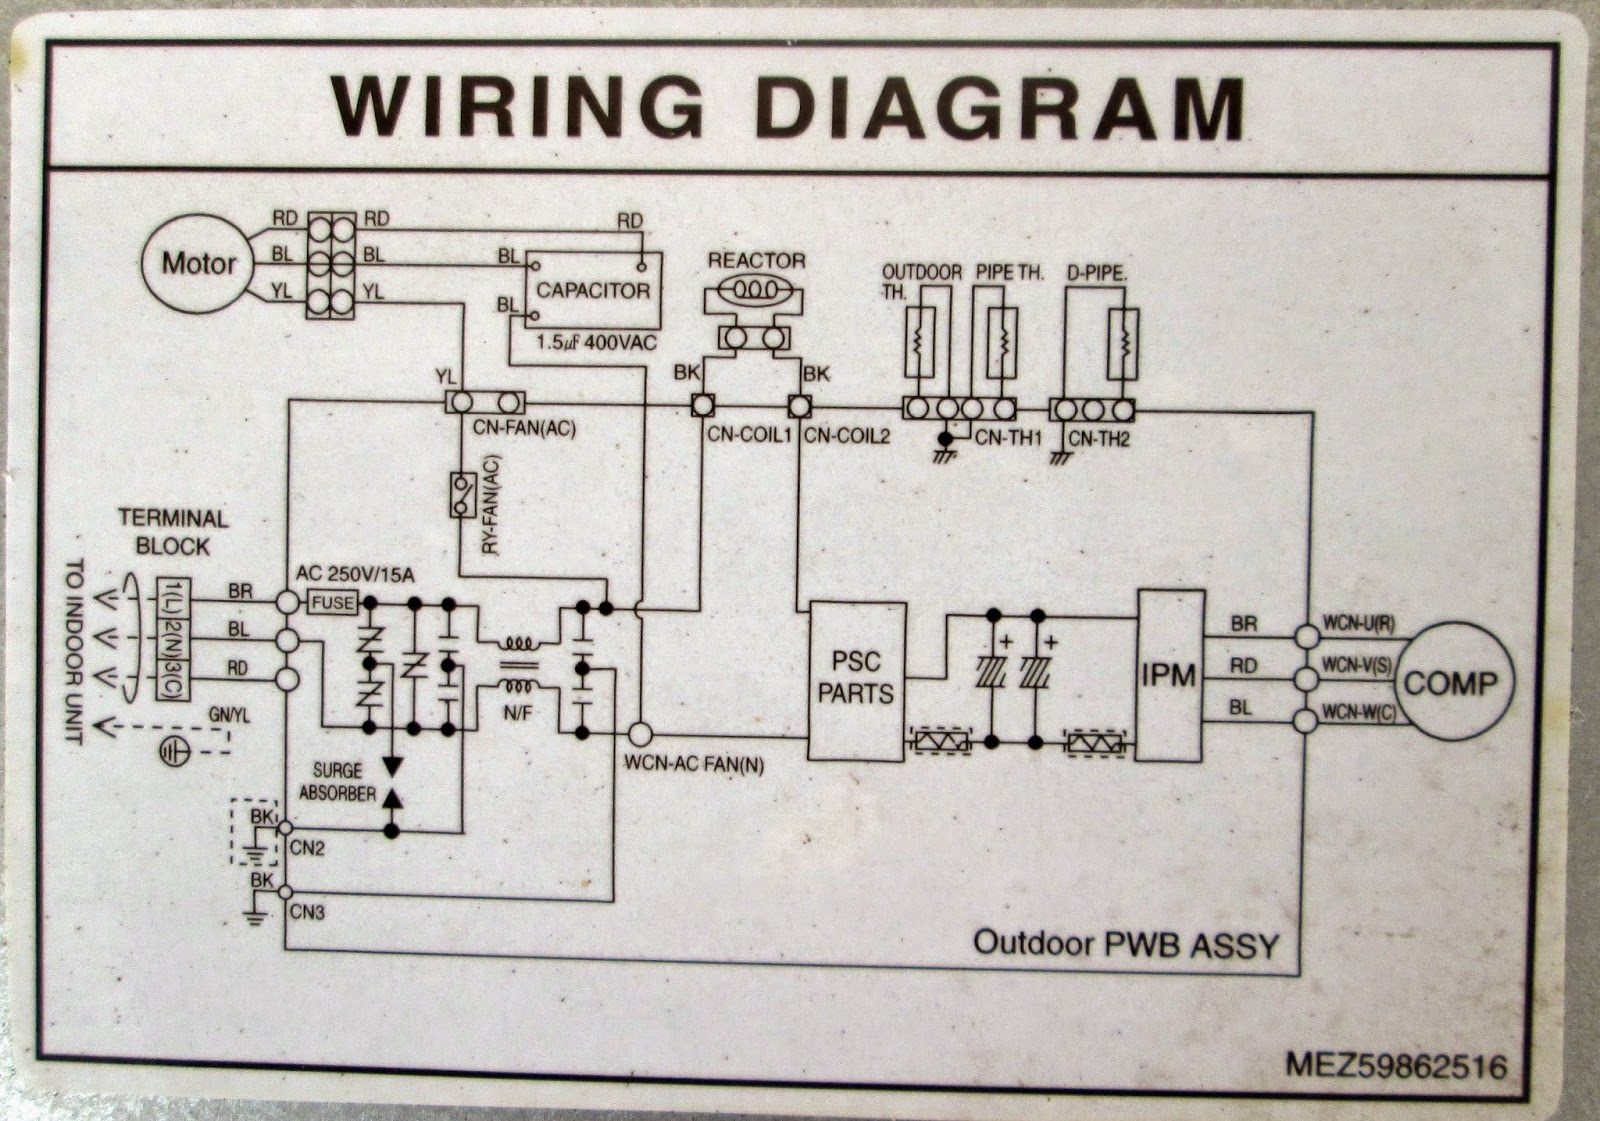 goldstar air conditioner wiring diagram wiring diagram modul ac split | wiring library blue star air conditioner wiring diagram